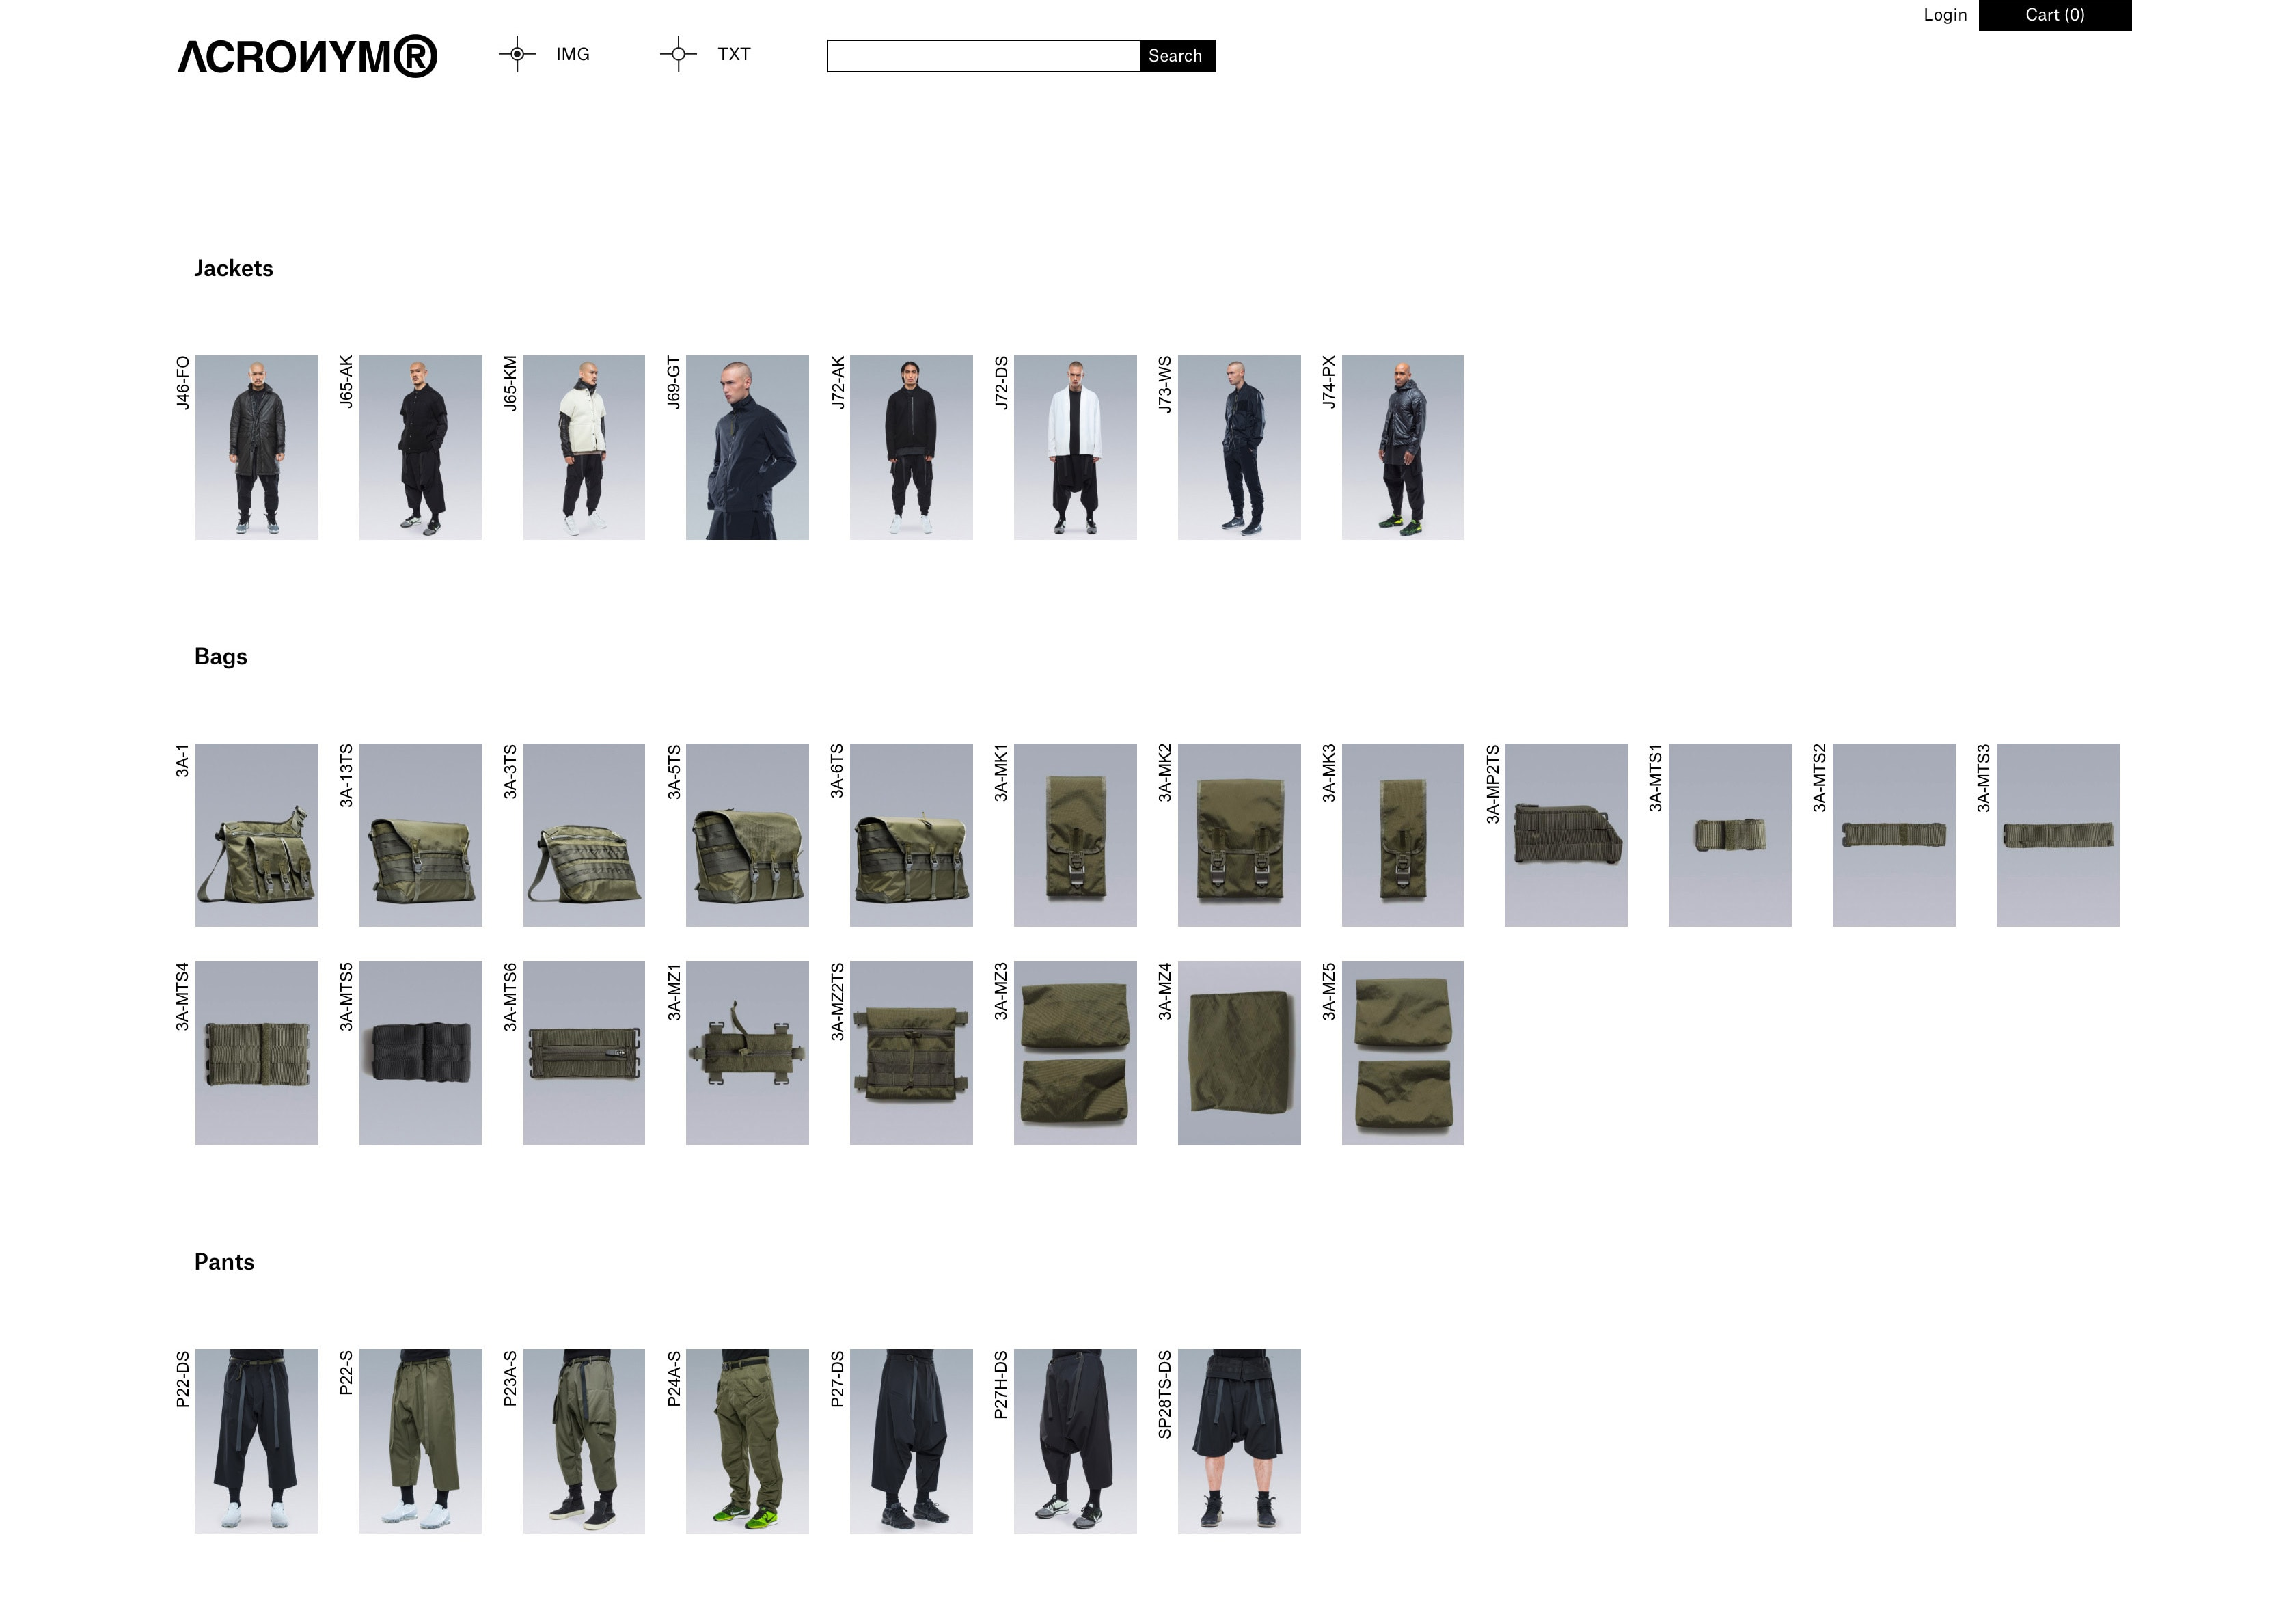 WAF GMBH – Product database and online store for ACRONYM®